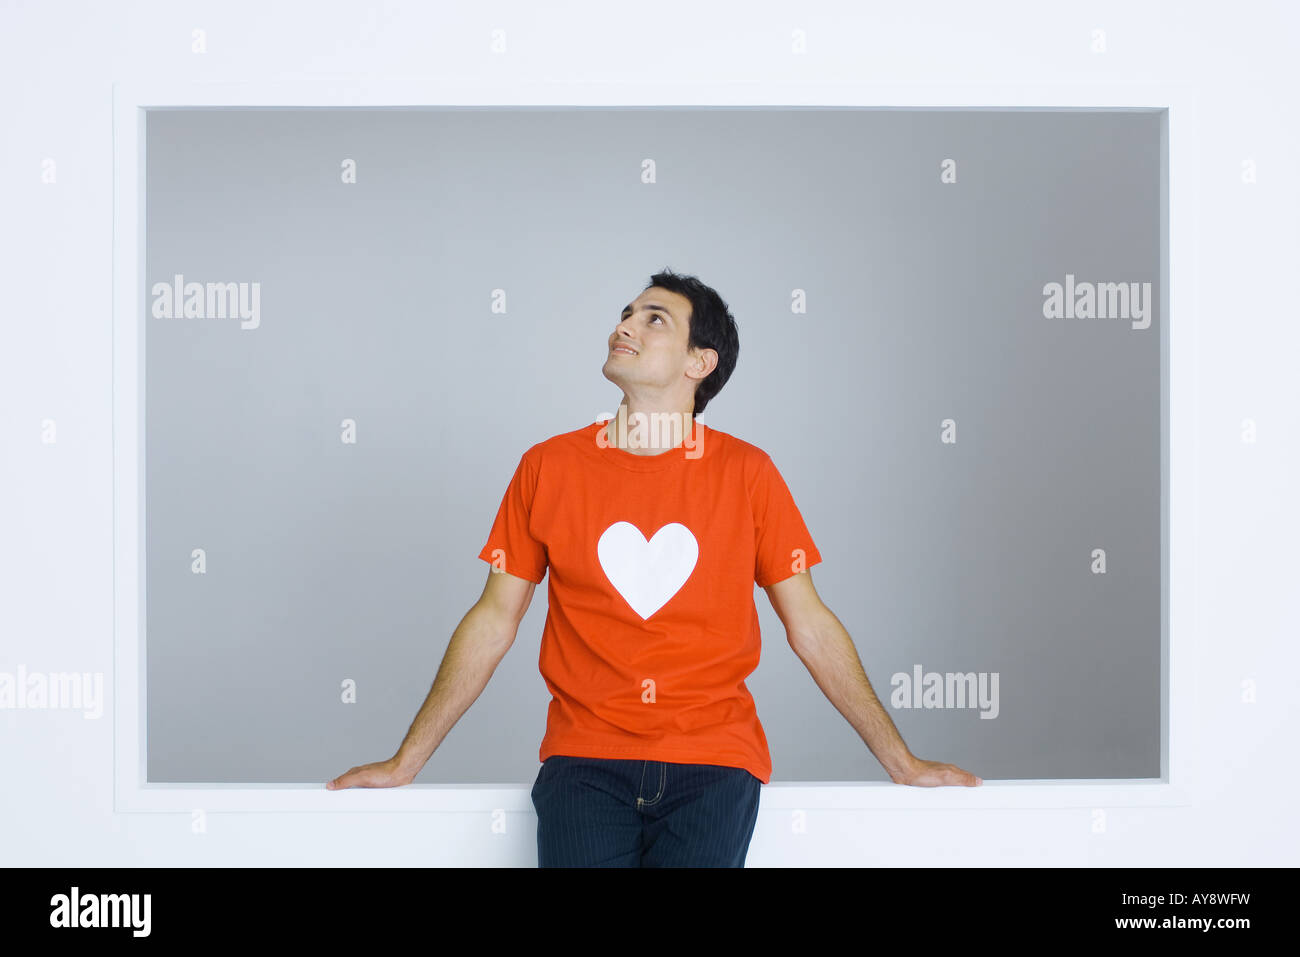 Man wearing tee-shirt with heart symbol, looking up, smiling - Stock Image